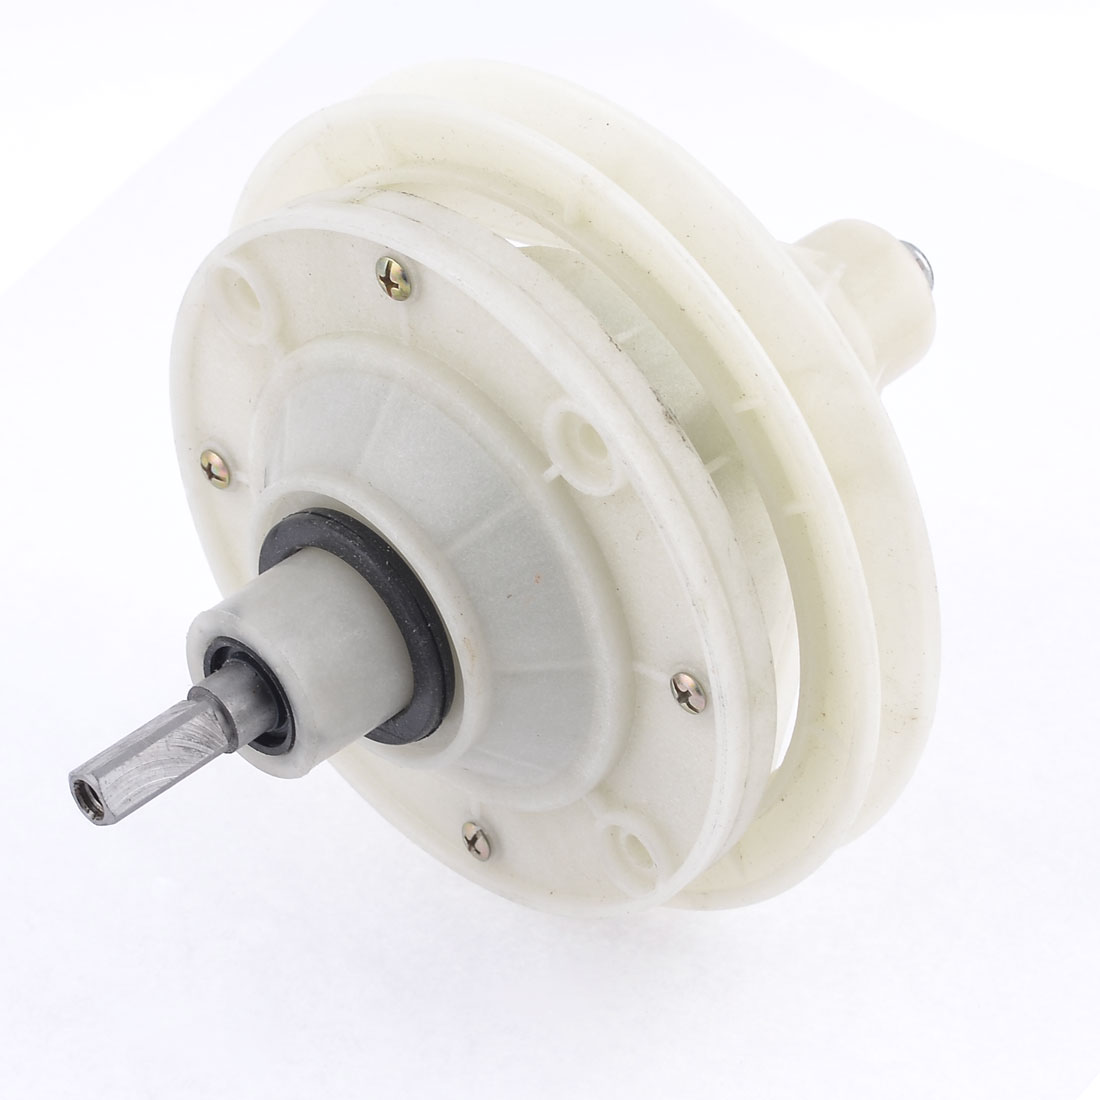 Replacement 5.5mm Inner Dia Drive Shaft Washing Machine Gear Reducer